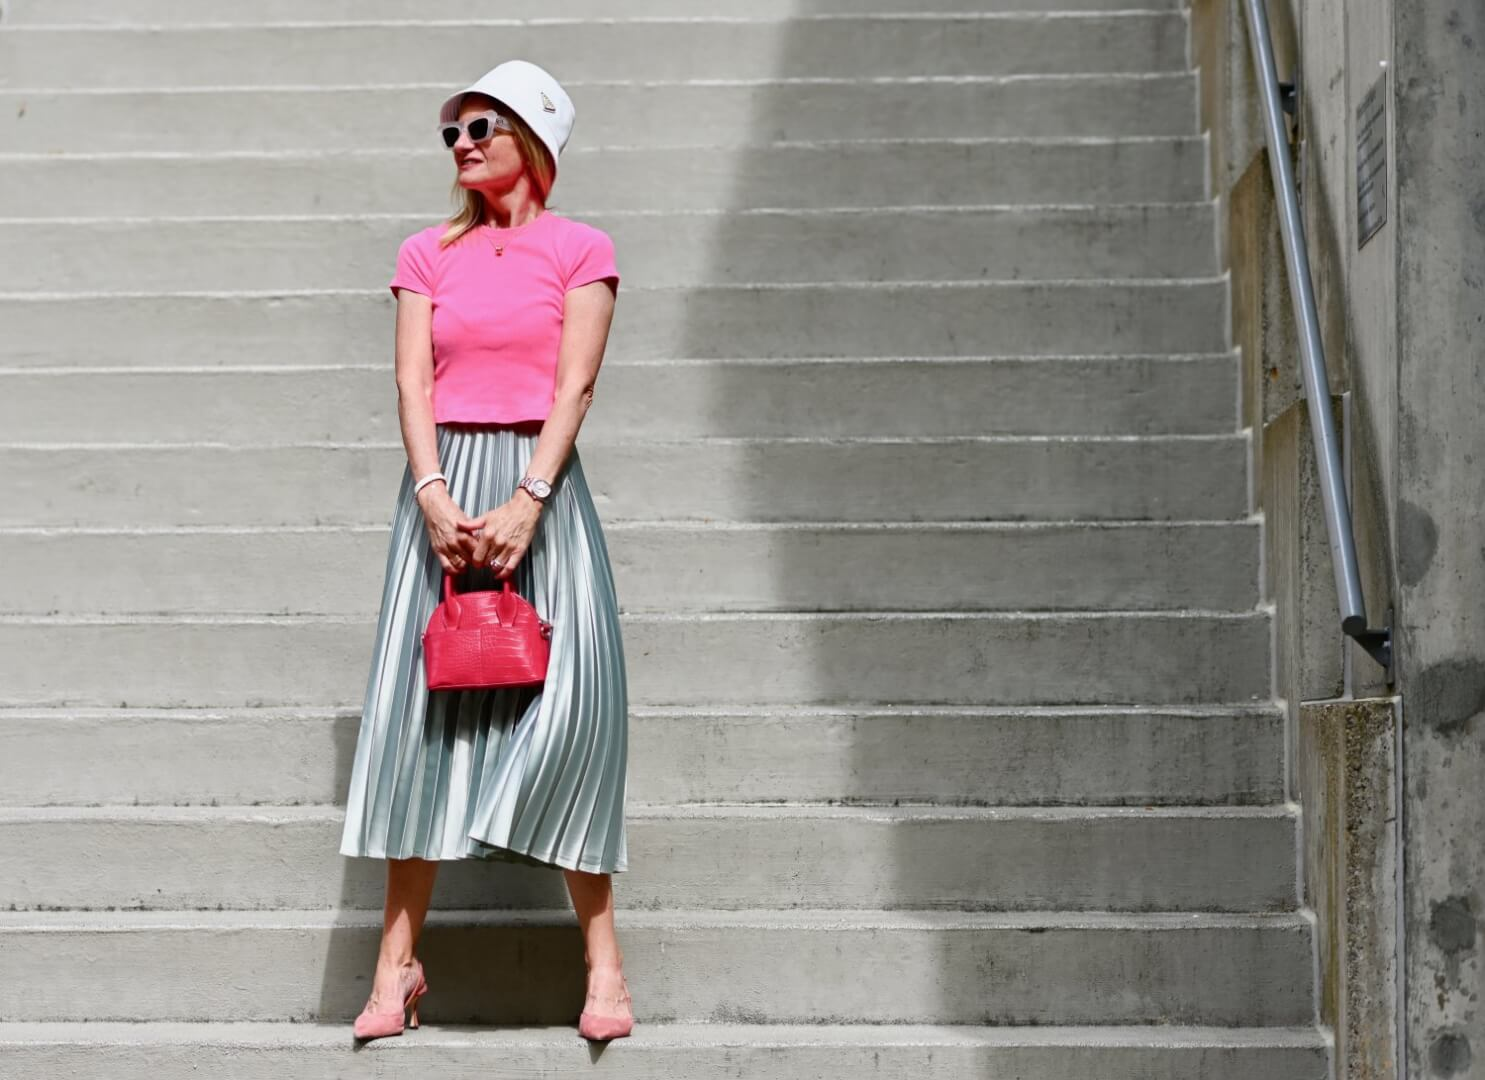 The Biggest Fashion Trend for Spring 2020